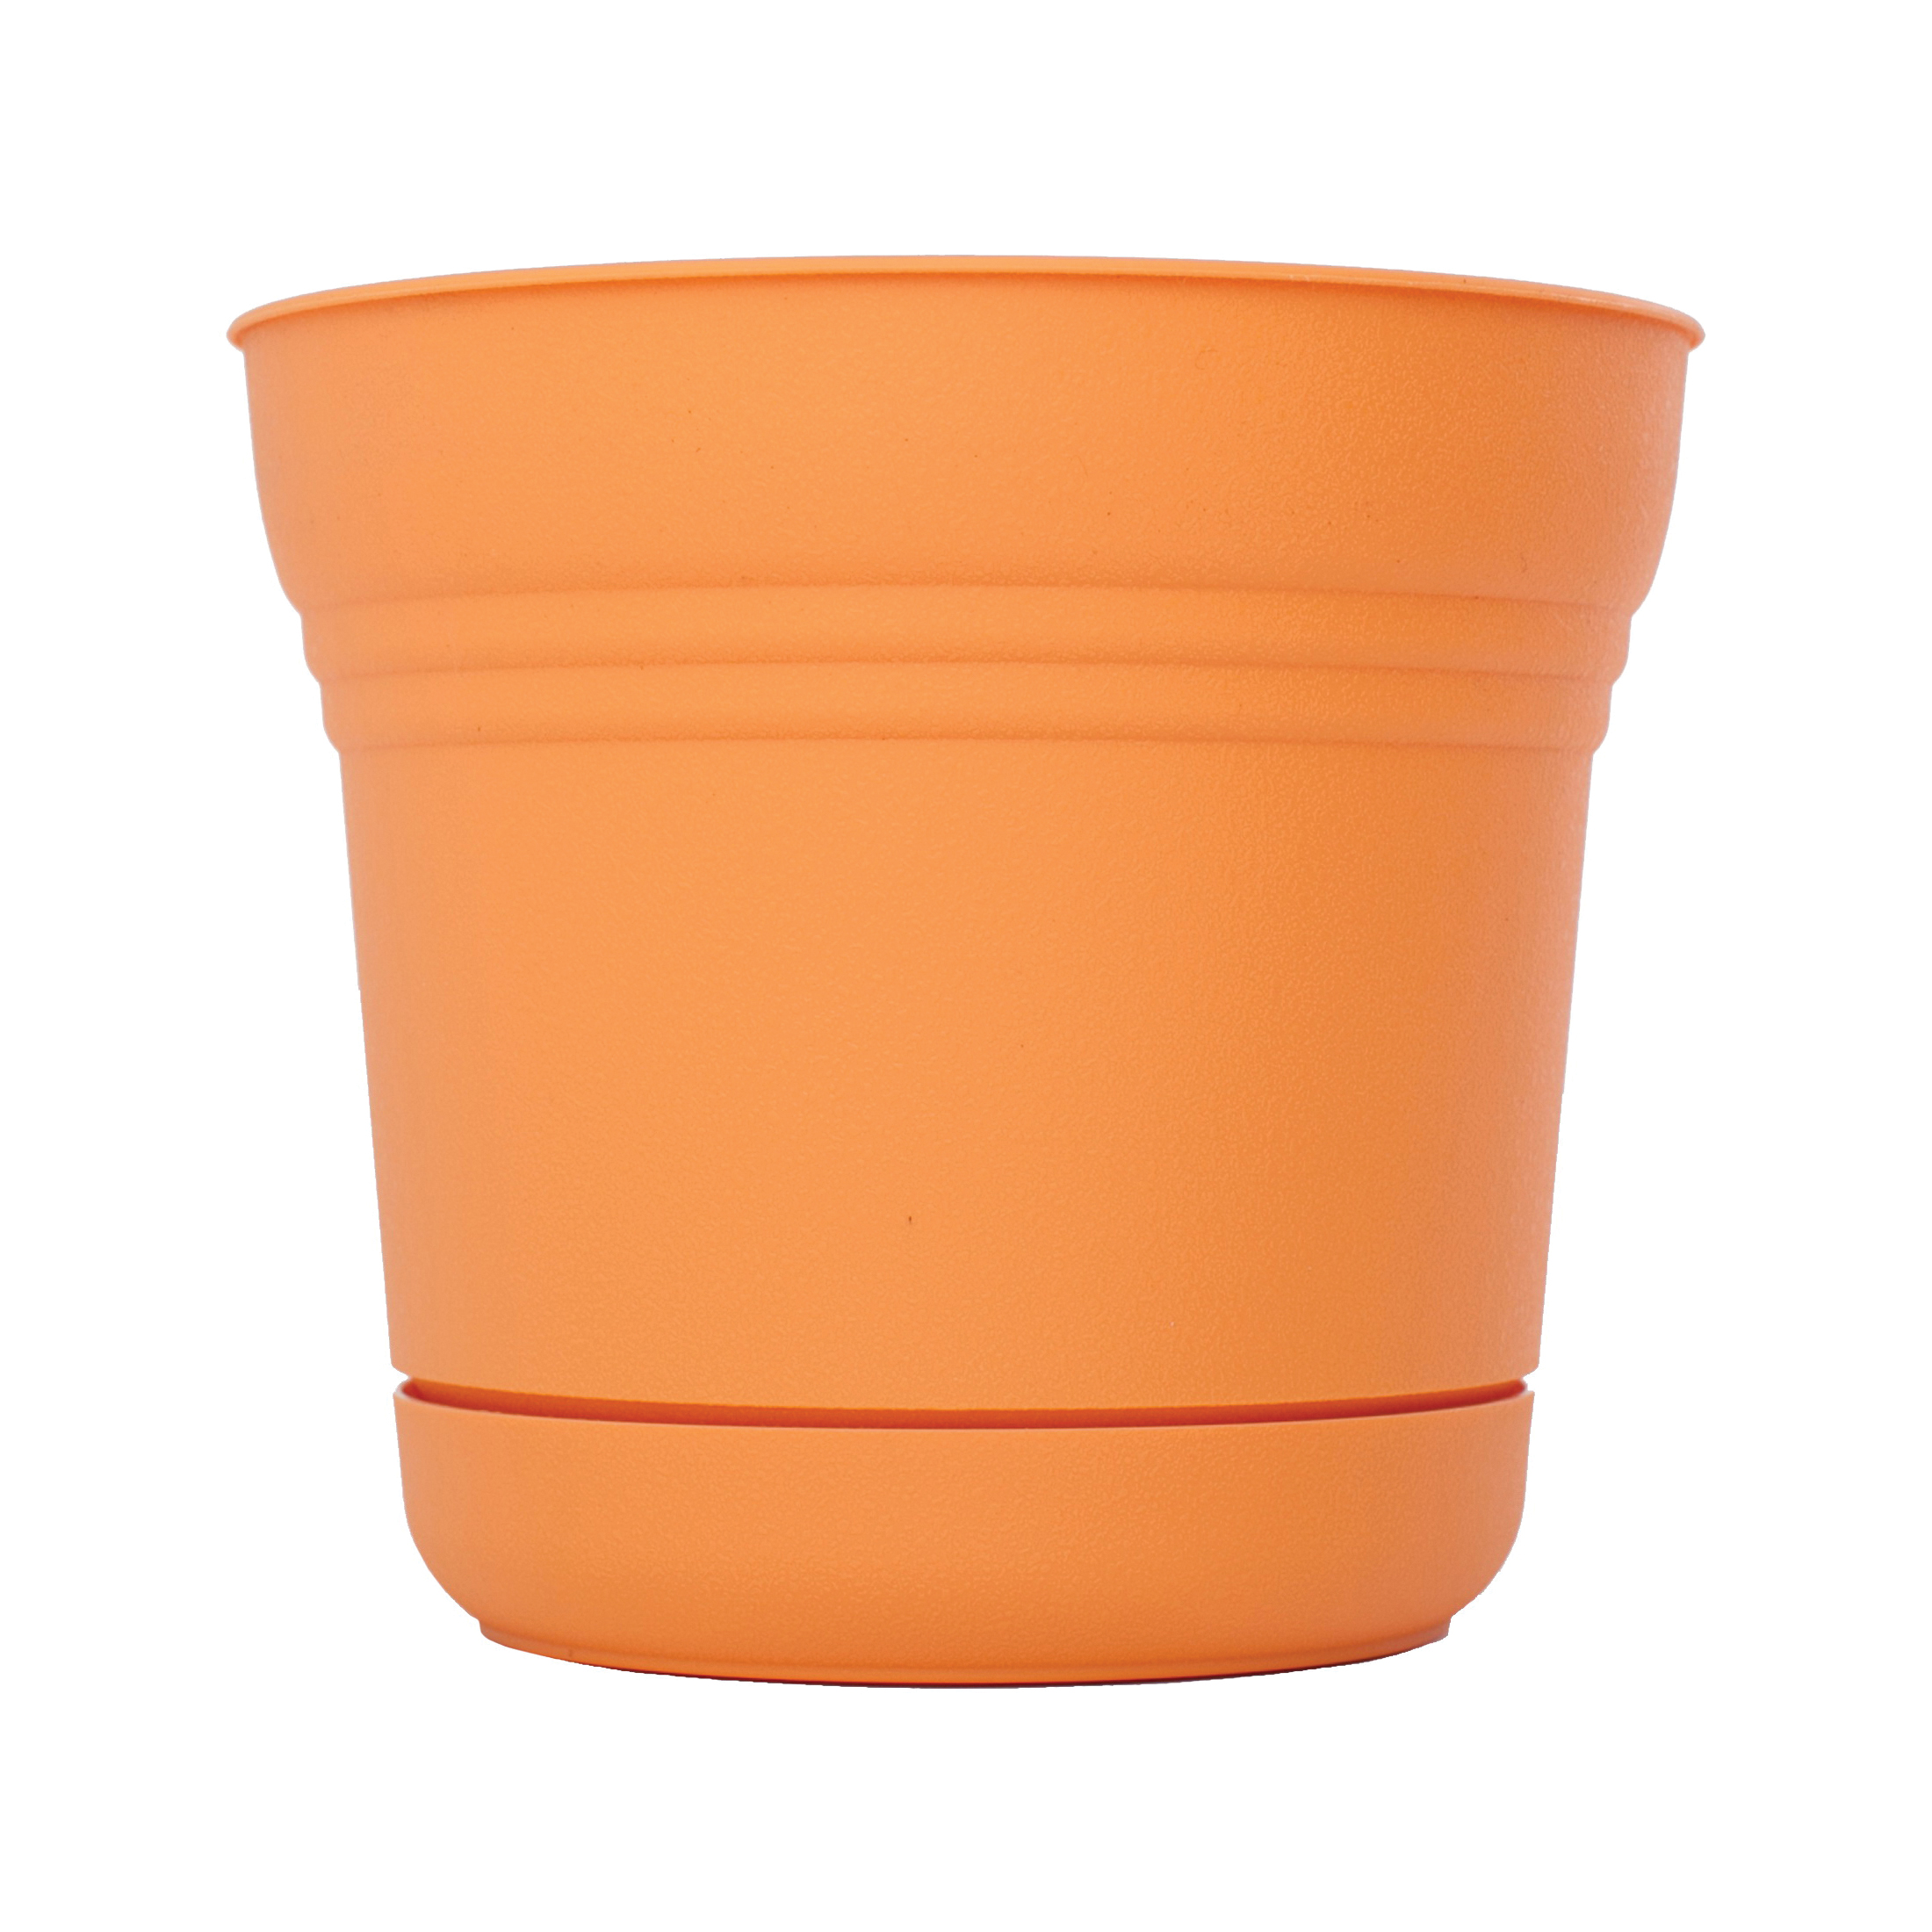 Picture of Bloem Saturn SP0720 Planter, 6-1/2 in W, Polypropylene, Tequila Sunrise